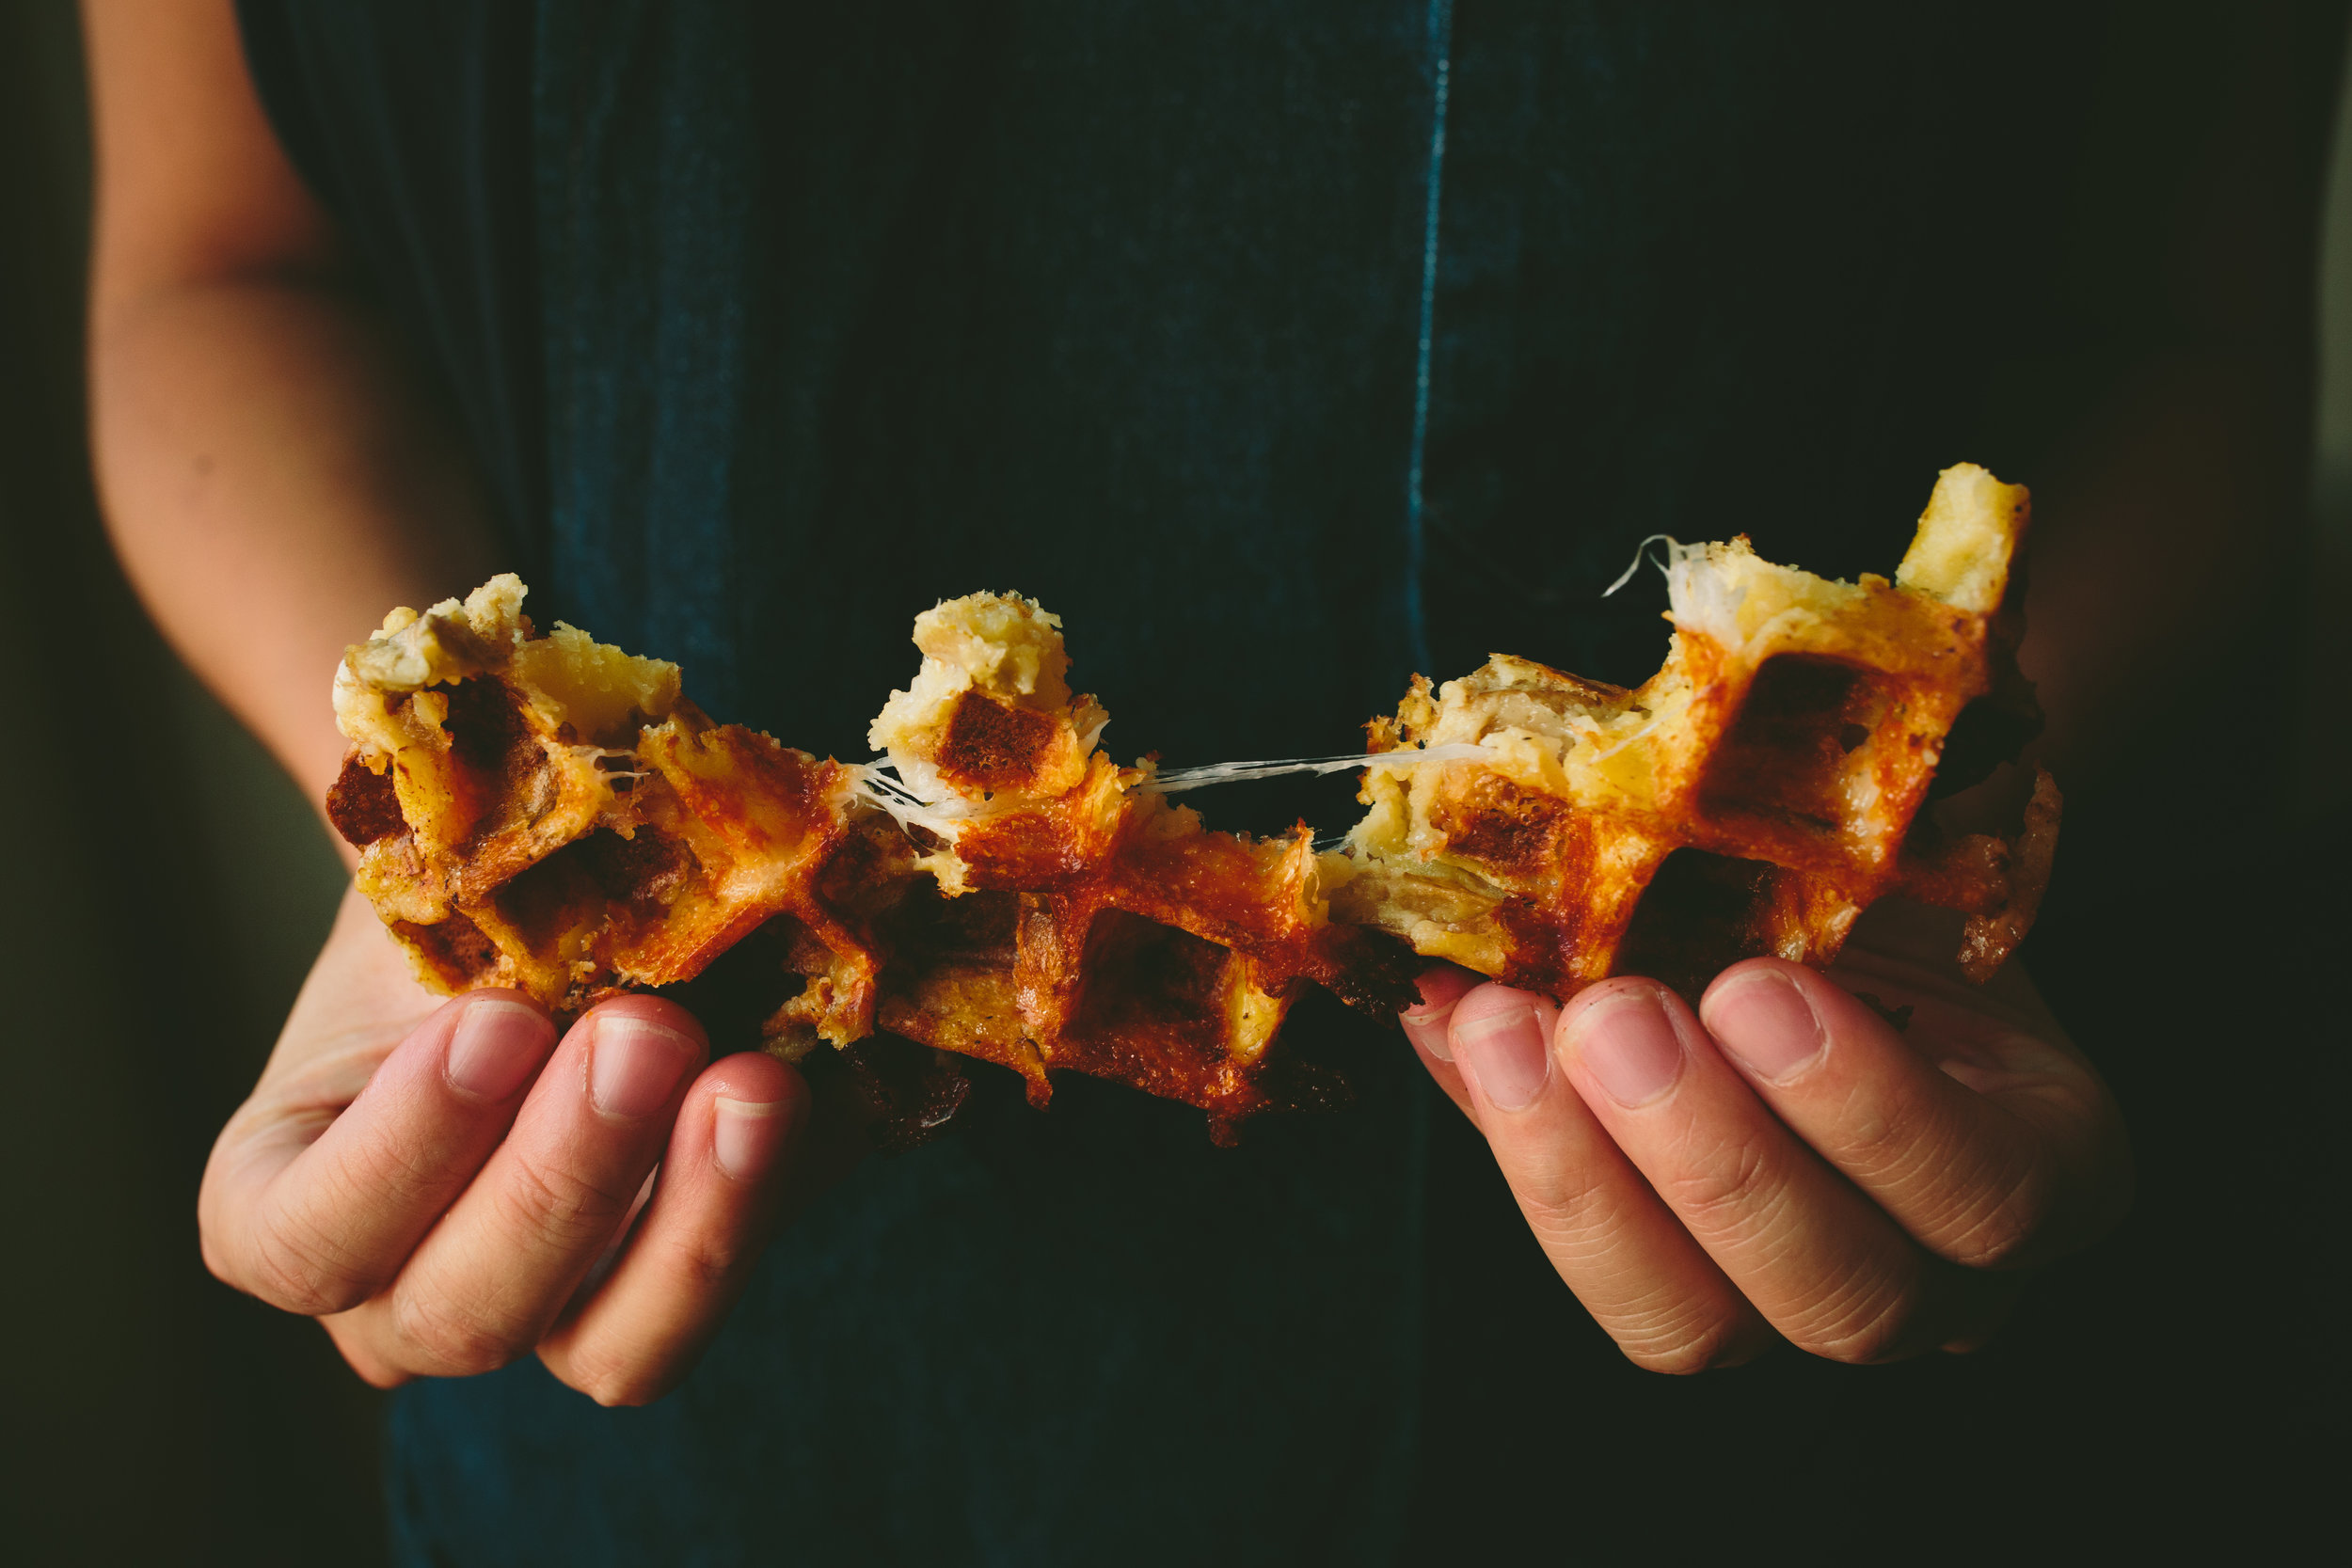 Smoky Cheese Wafflato from PAGU in Cambridge, MA - Photo by Brian Samuels of A Thought For Food